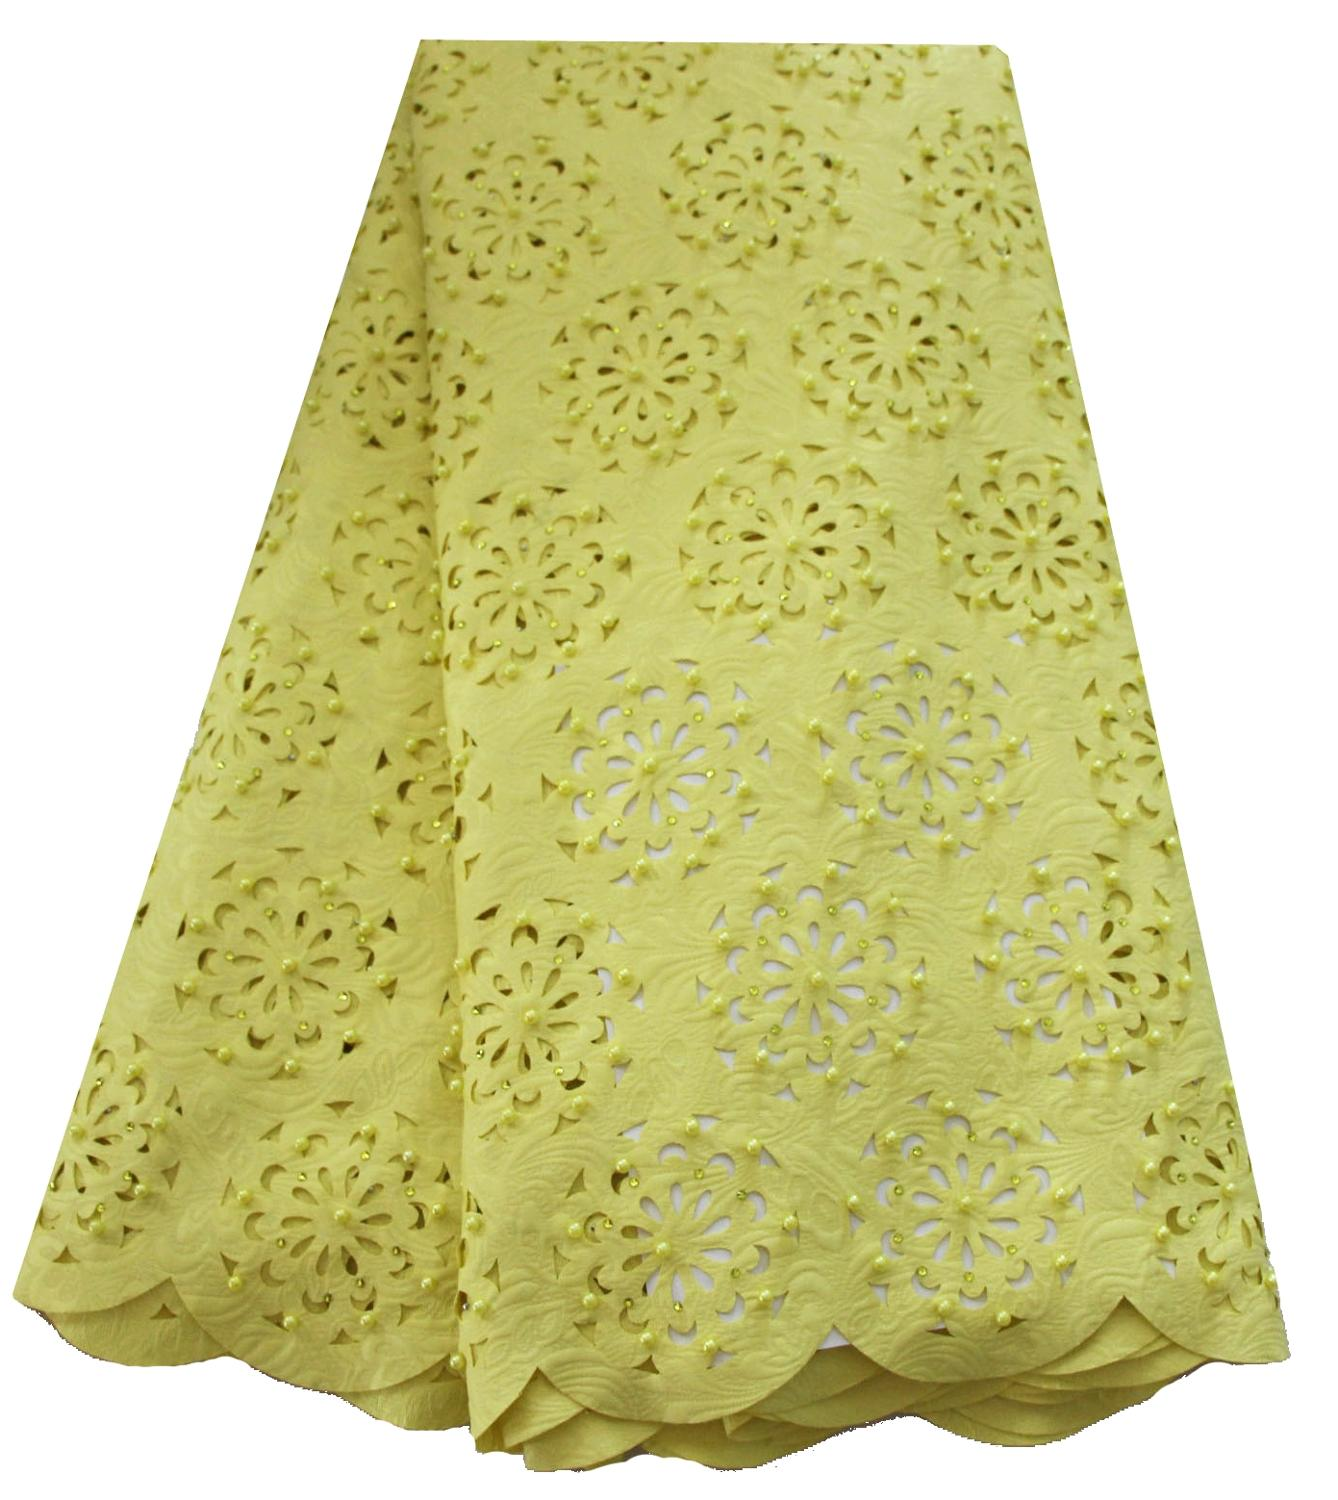 African Lace Fabric 2019 High Quality Lace French Embroidered Laser Cut Lace fabric Nigeria Latest Wedding Dress Lace Fabric